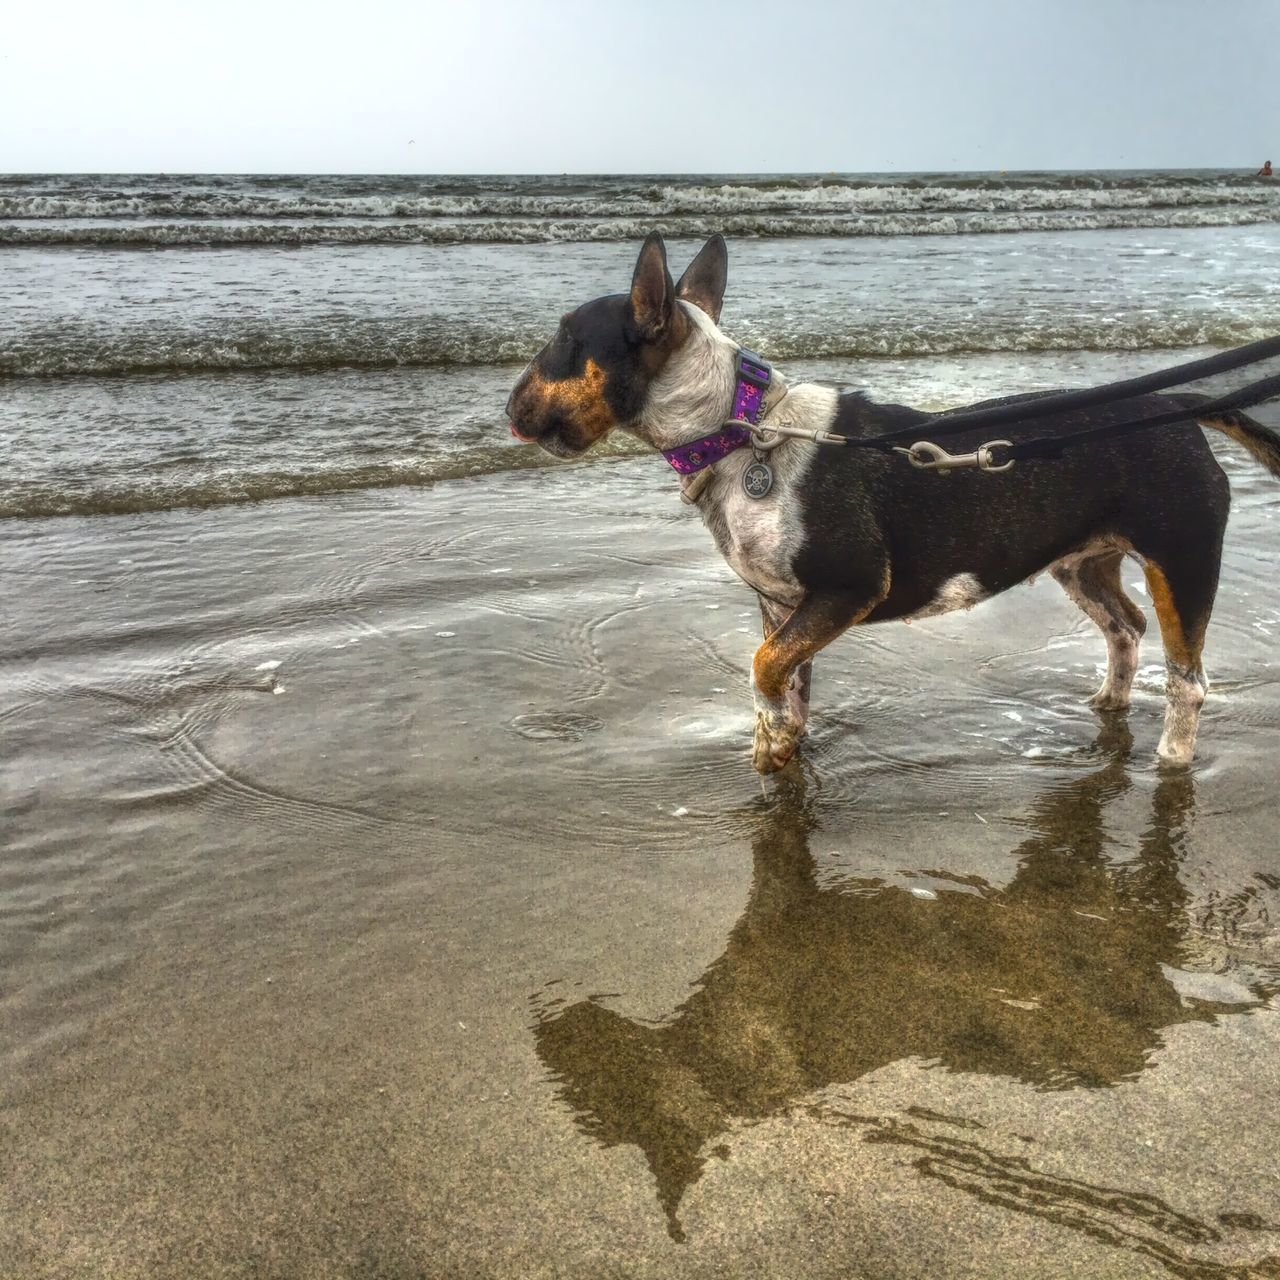 dog, sea, pets, domestic animals, beach, water, one animal, animal themes, horizon over water, sand, outdoors, mammal, sky, nature, standing, day, no people